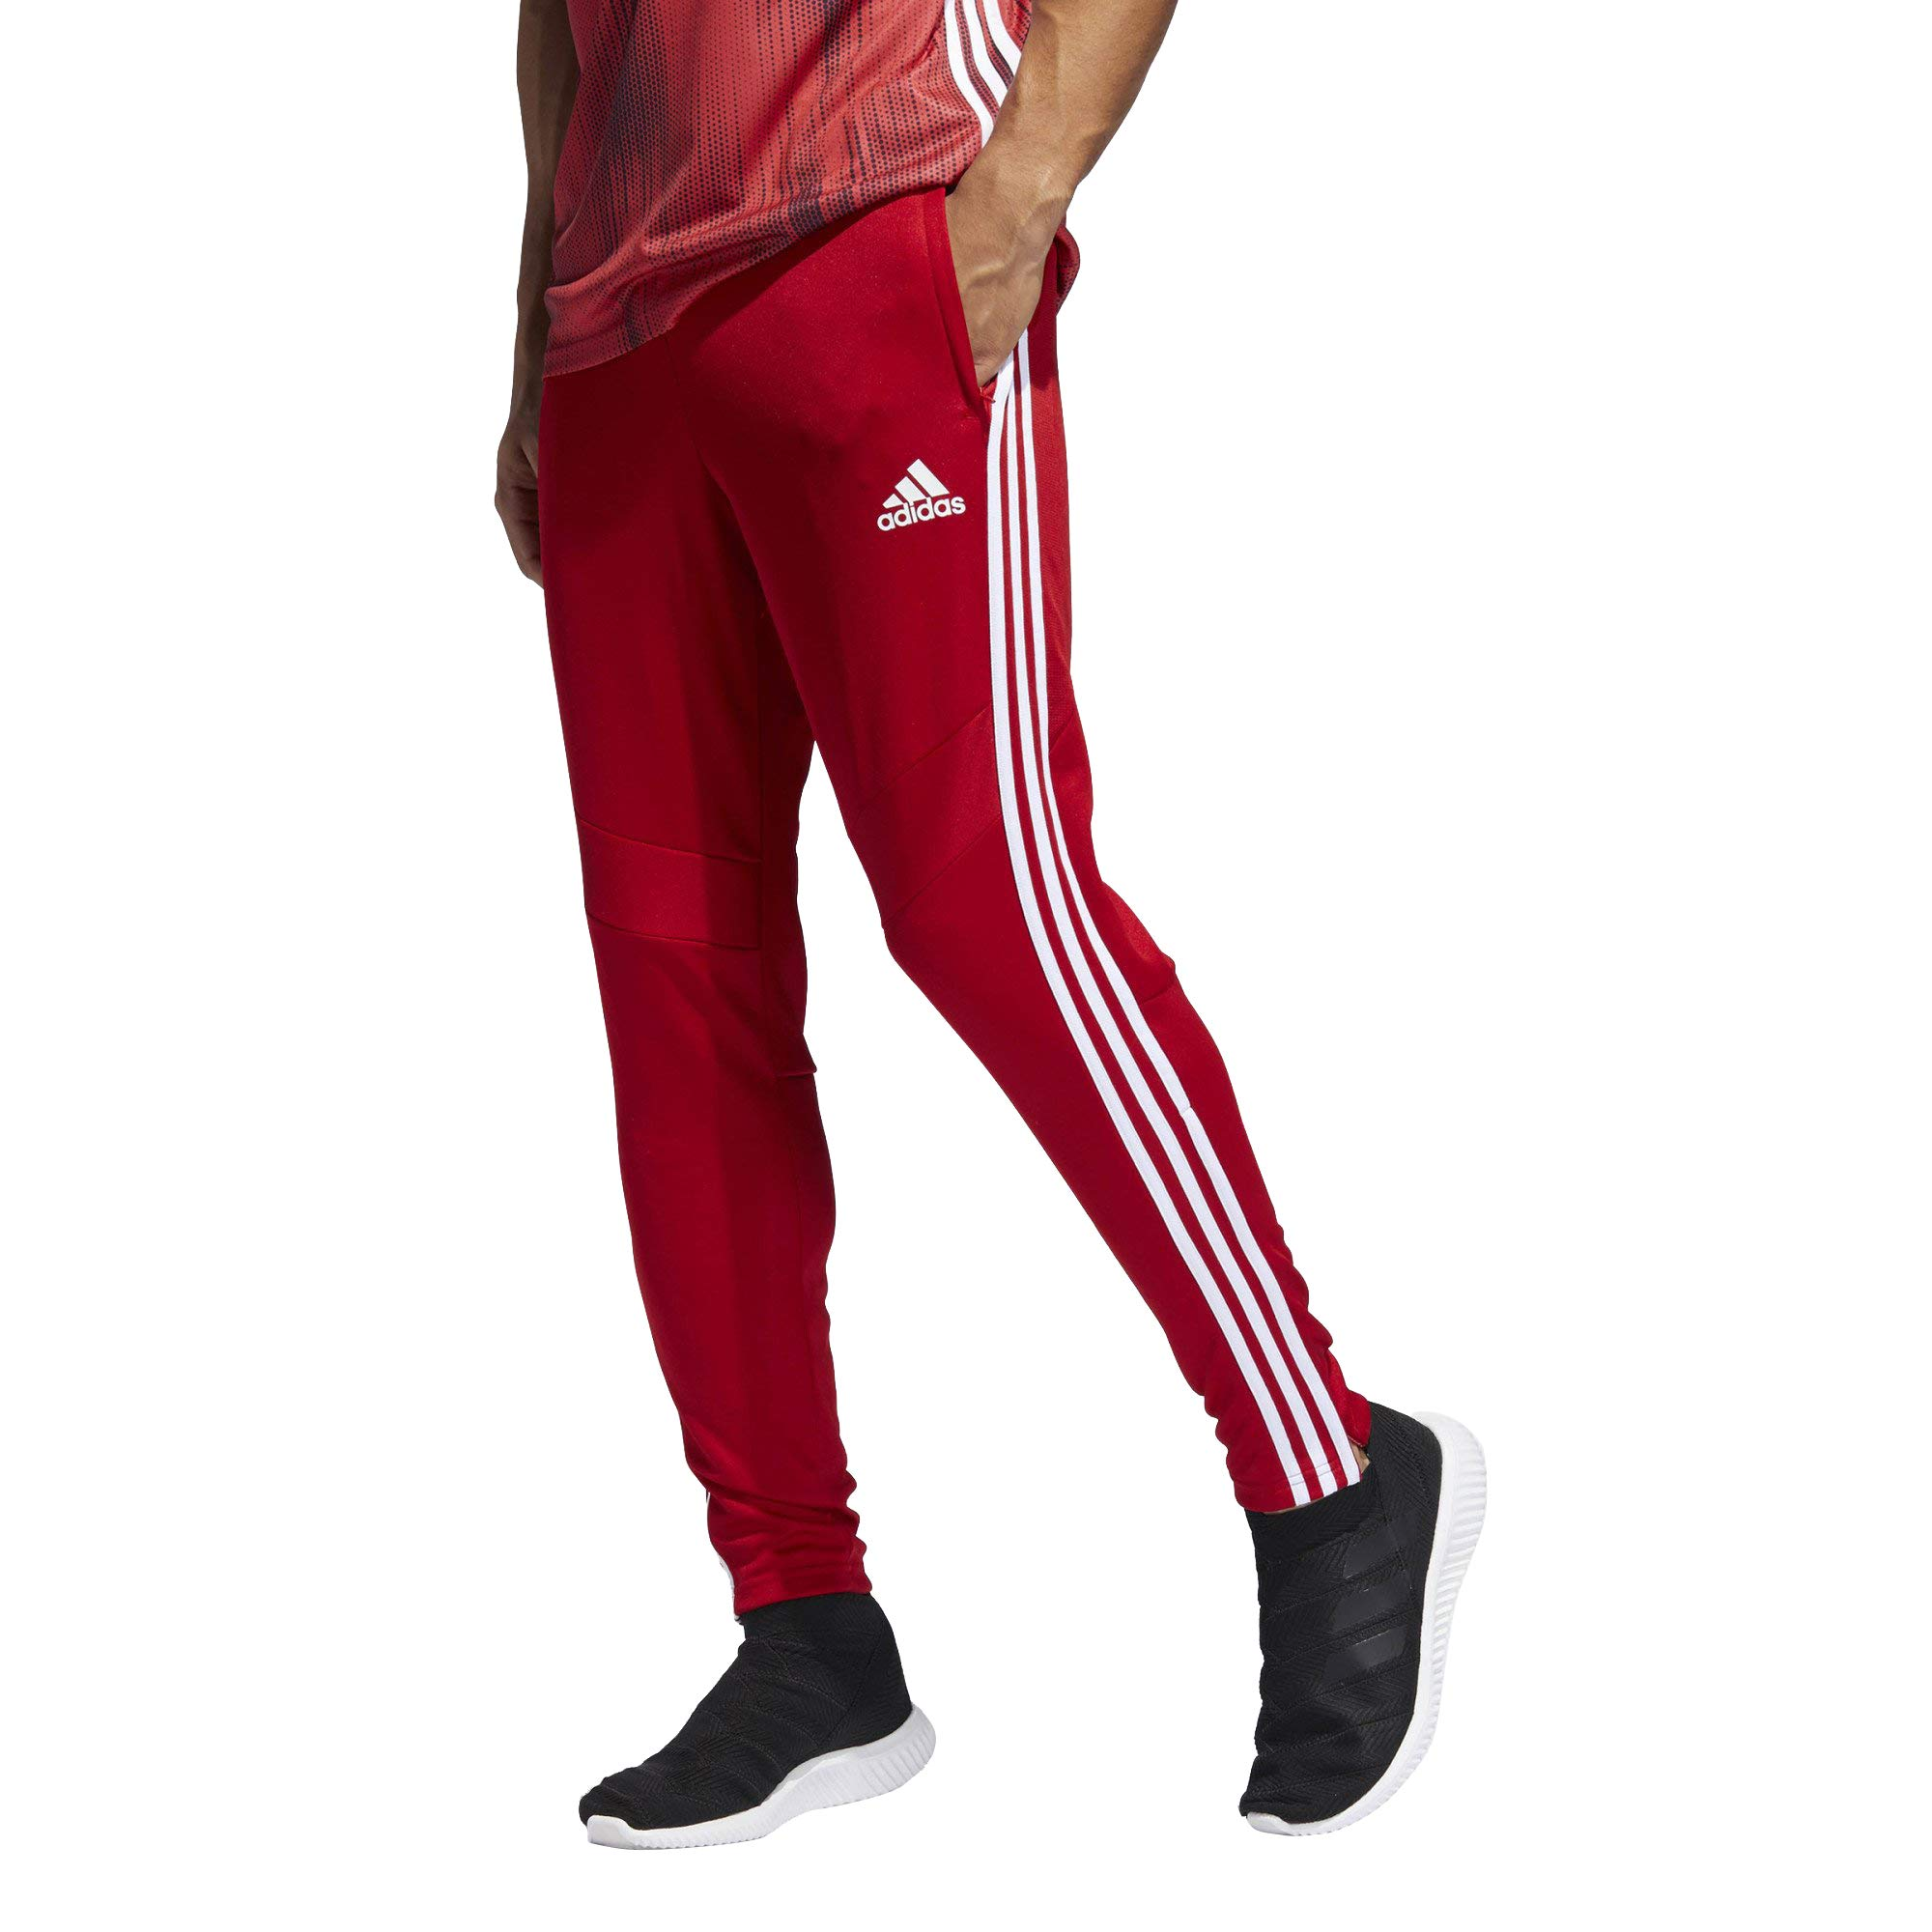 d32ae5db7 Galleon - Adidas Men's Soccer Tiro 19 Training Pant, Power Red/White,  X-Small